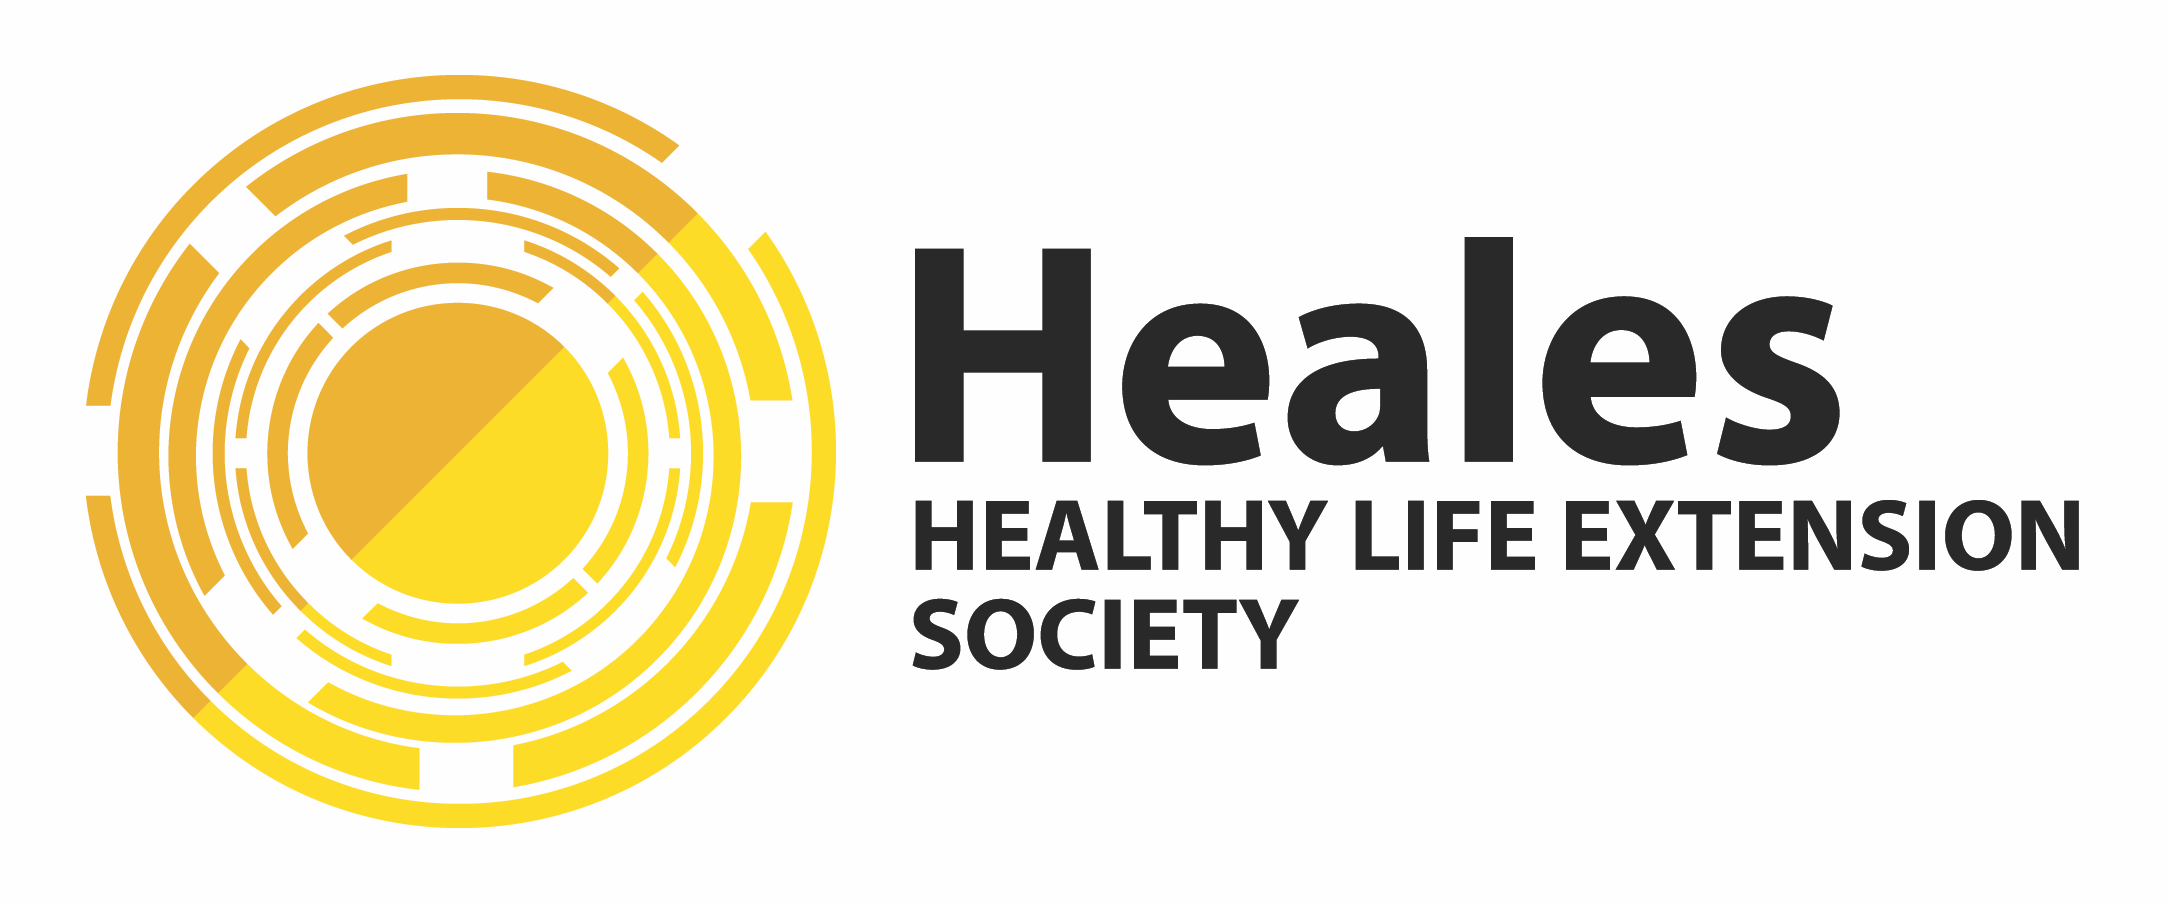 Healthy Life Extension Society